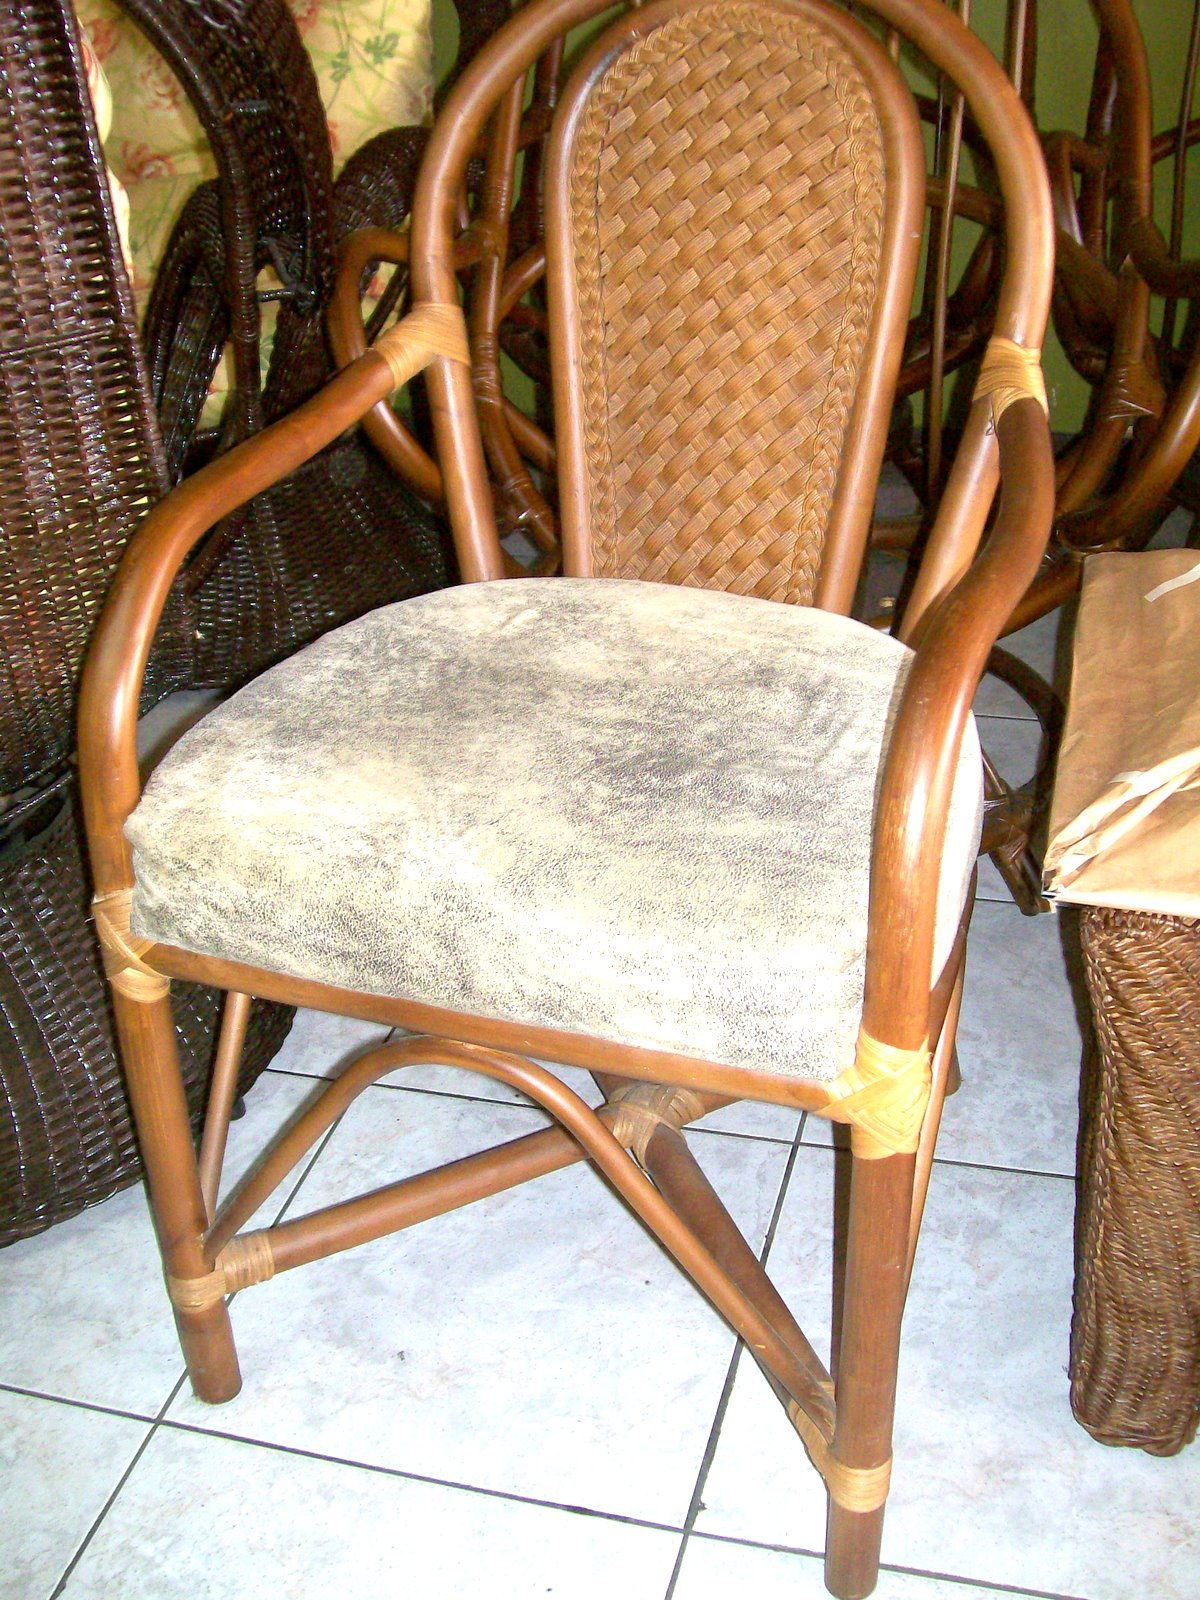 all from furniture home outdoor set chairs cupboard living weather hampstead zoom of bamboo travel